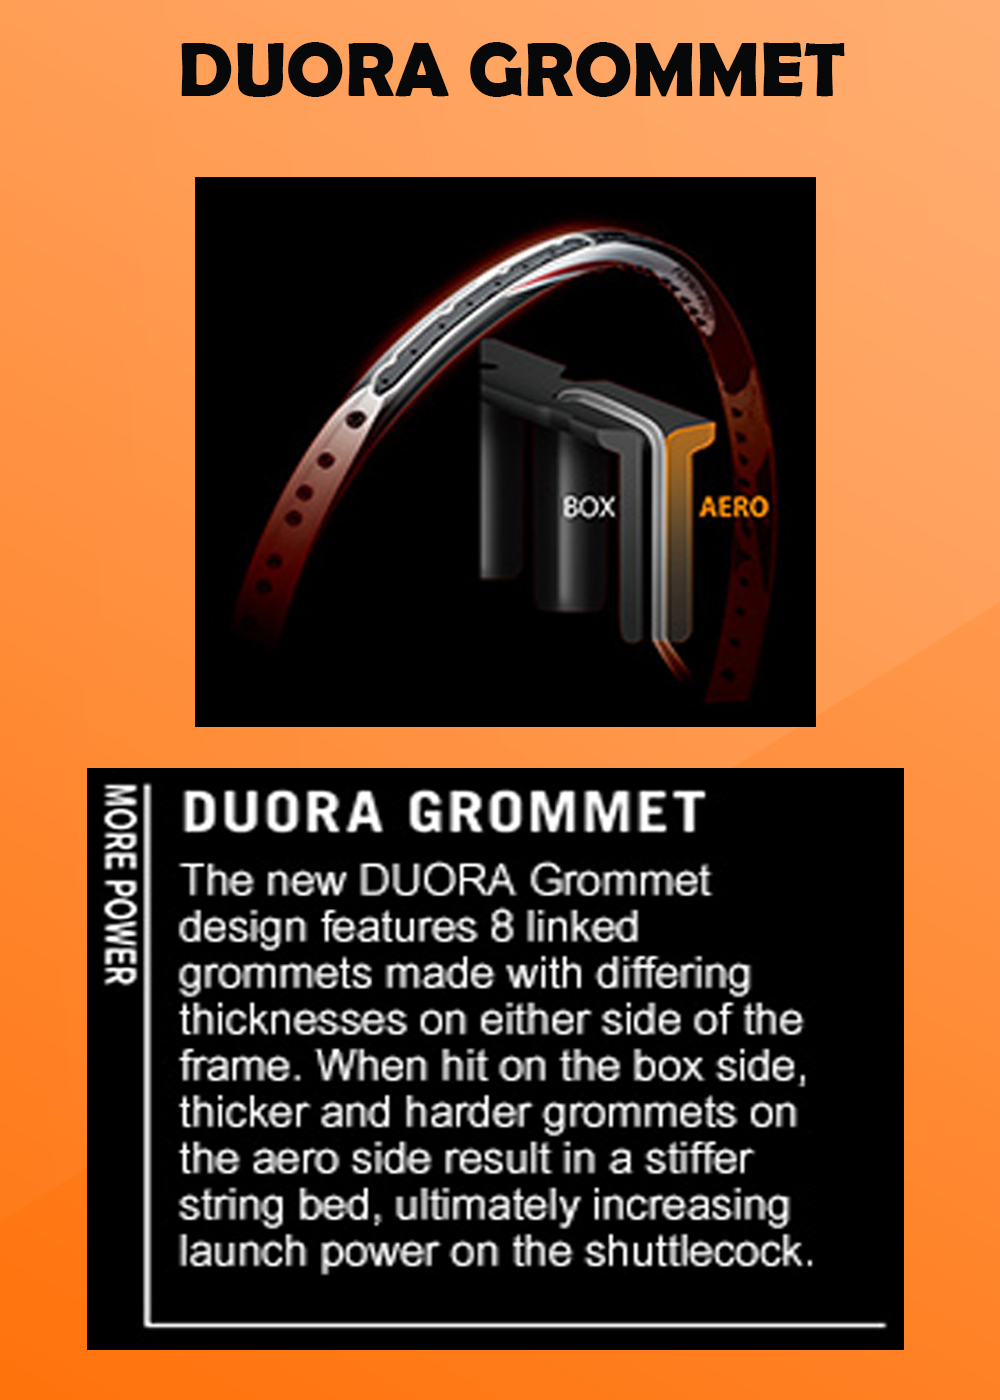 DUORA GROMMET TECHNOLOGY_C